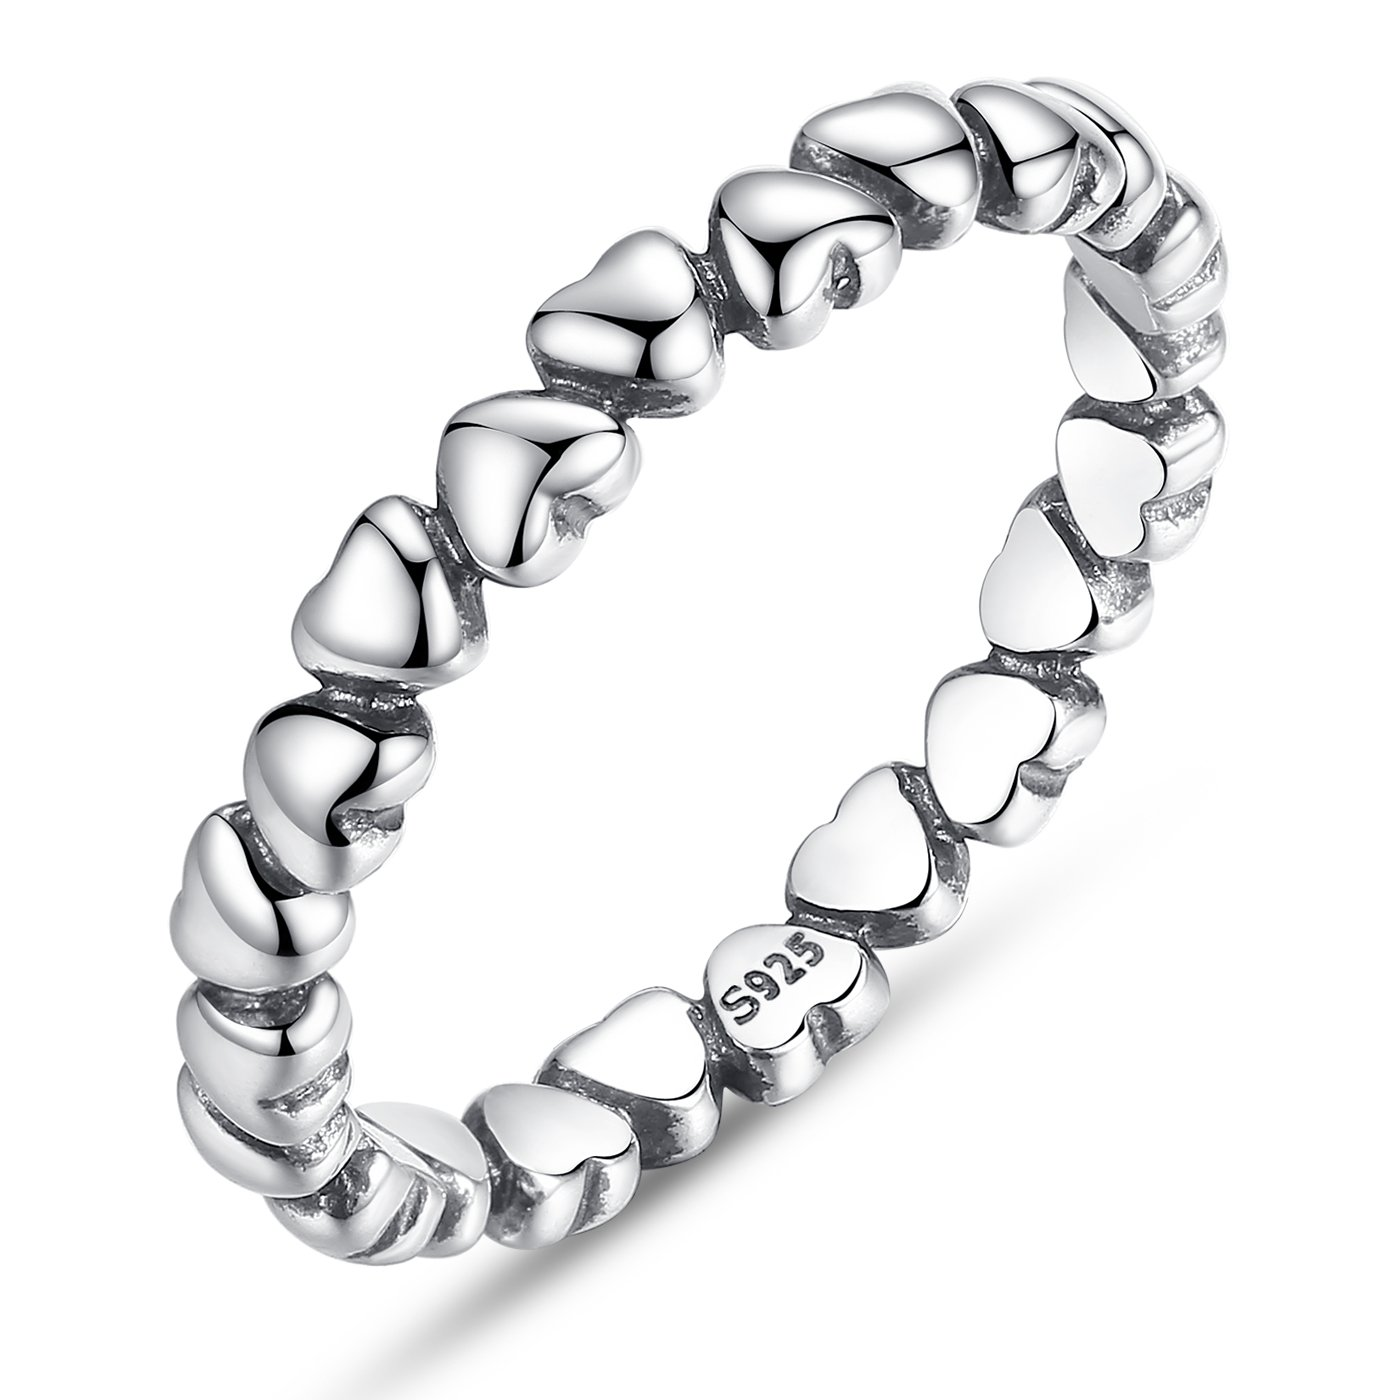 BAMOER 925 Sterling Silver Endless Love Heart Stacking Ring for Women Teen Girls Birthday Anniversary Gift Size 6-9 (7)